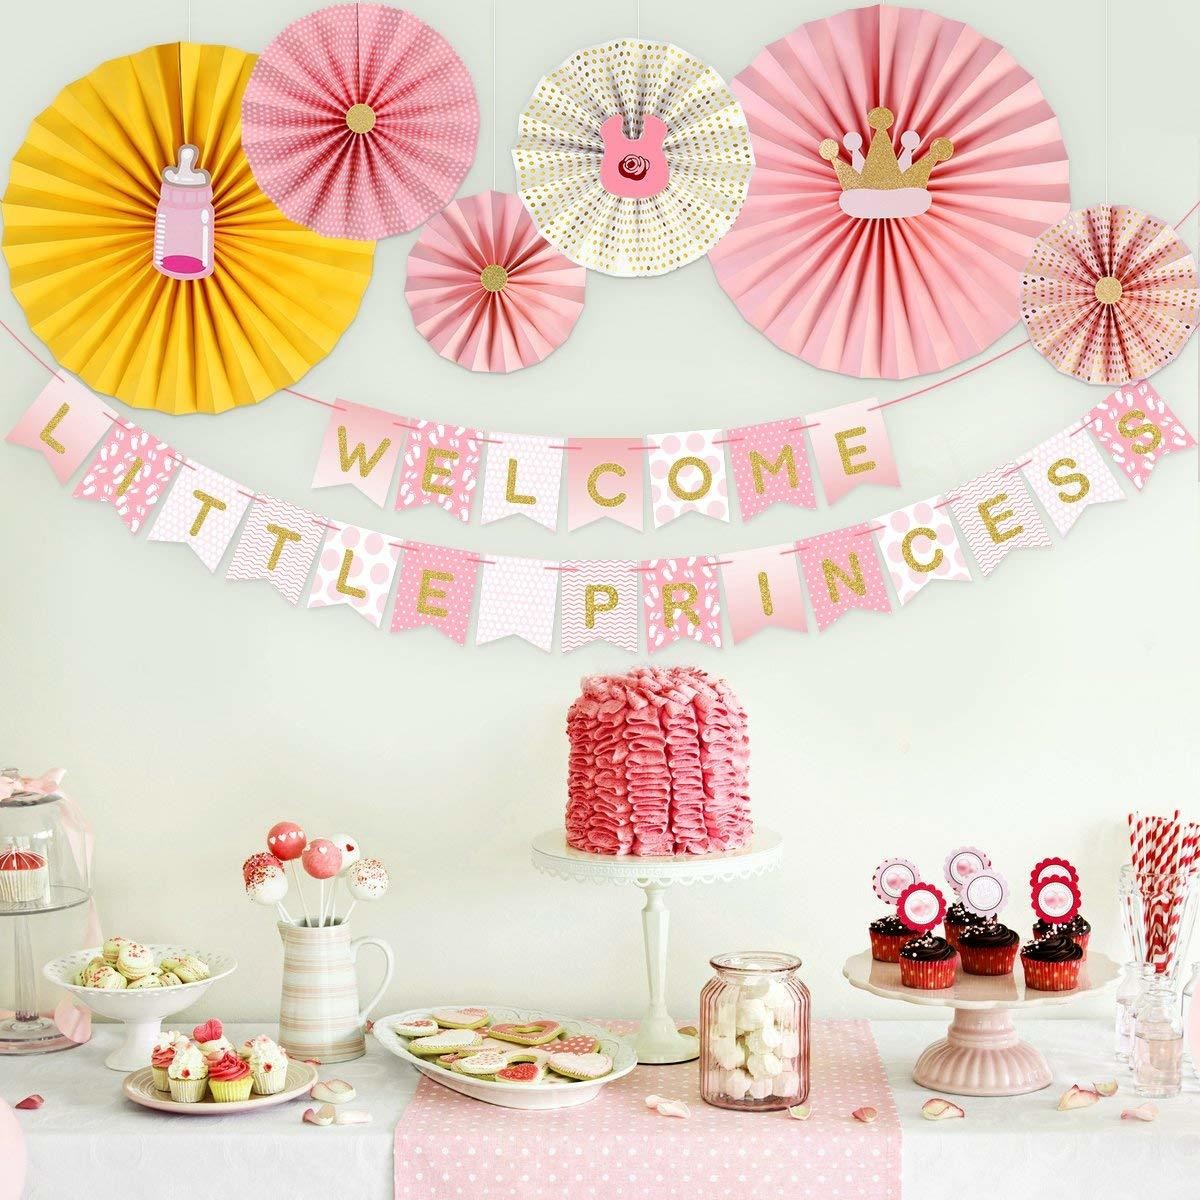 Baby Shower 101: A Guide To Planning The Perfect Shower